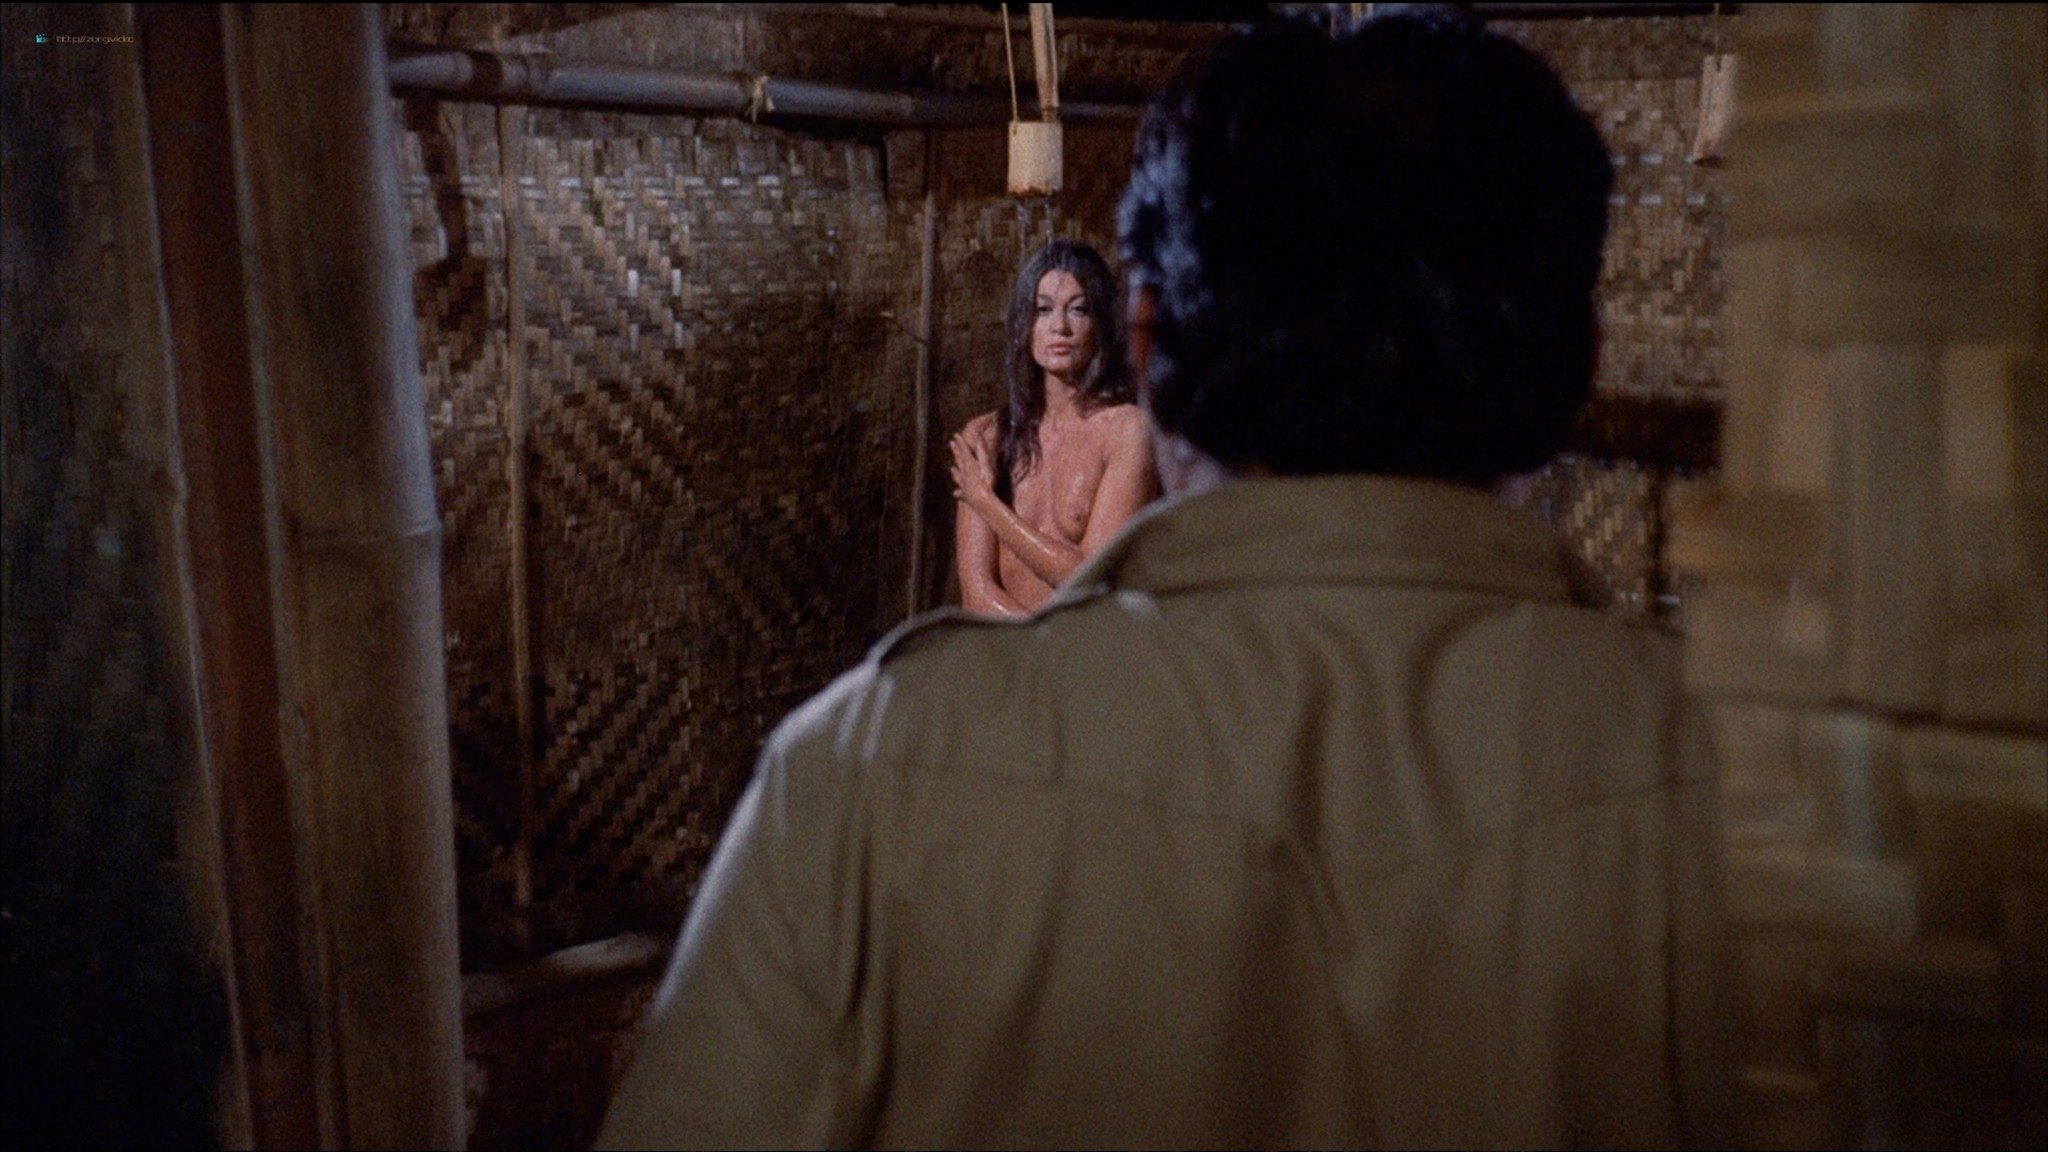 Pam Grier nude Anita Ford nude bush, others nude - The Big Bird Cage (1972) HD 1080p BluRay(r) (14)